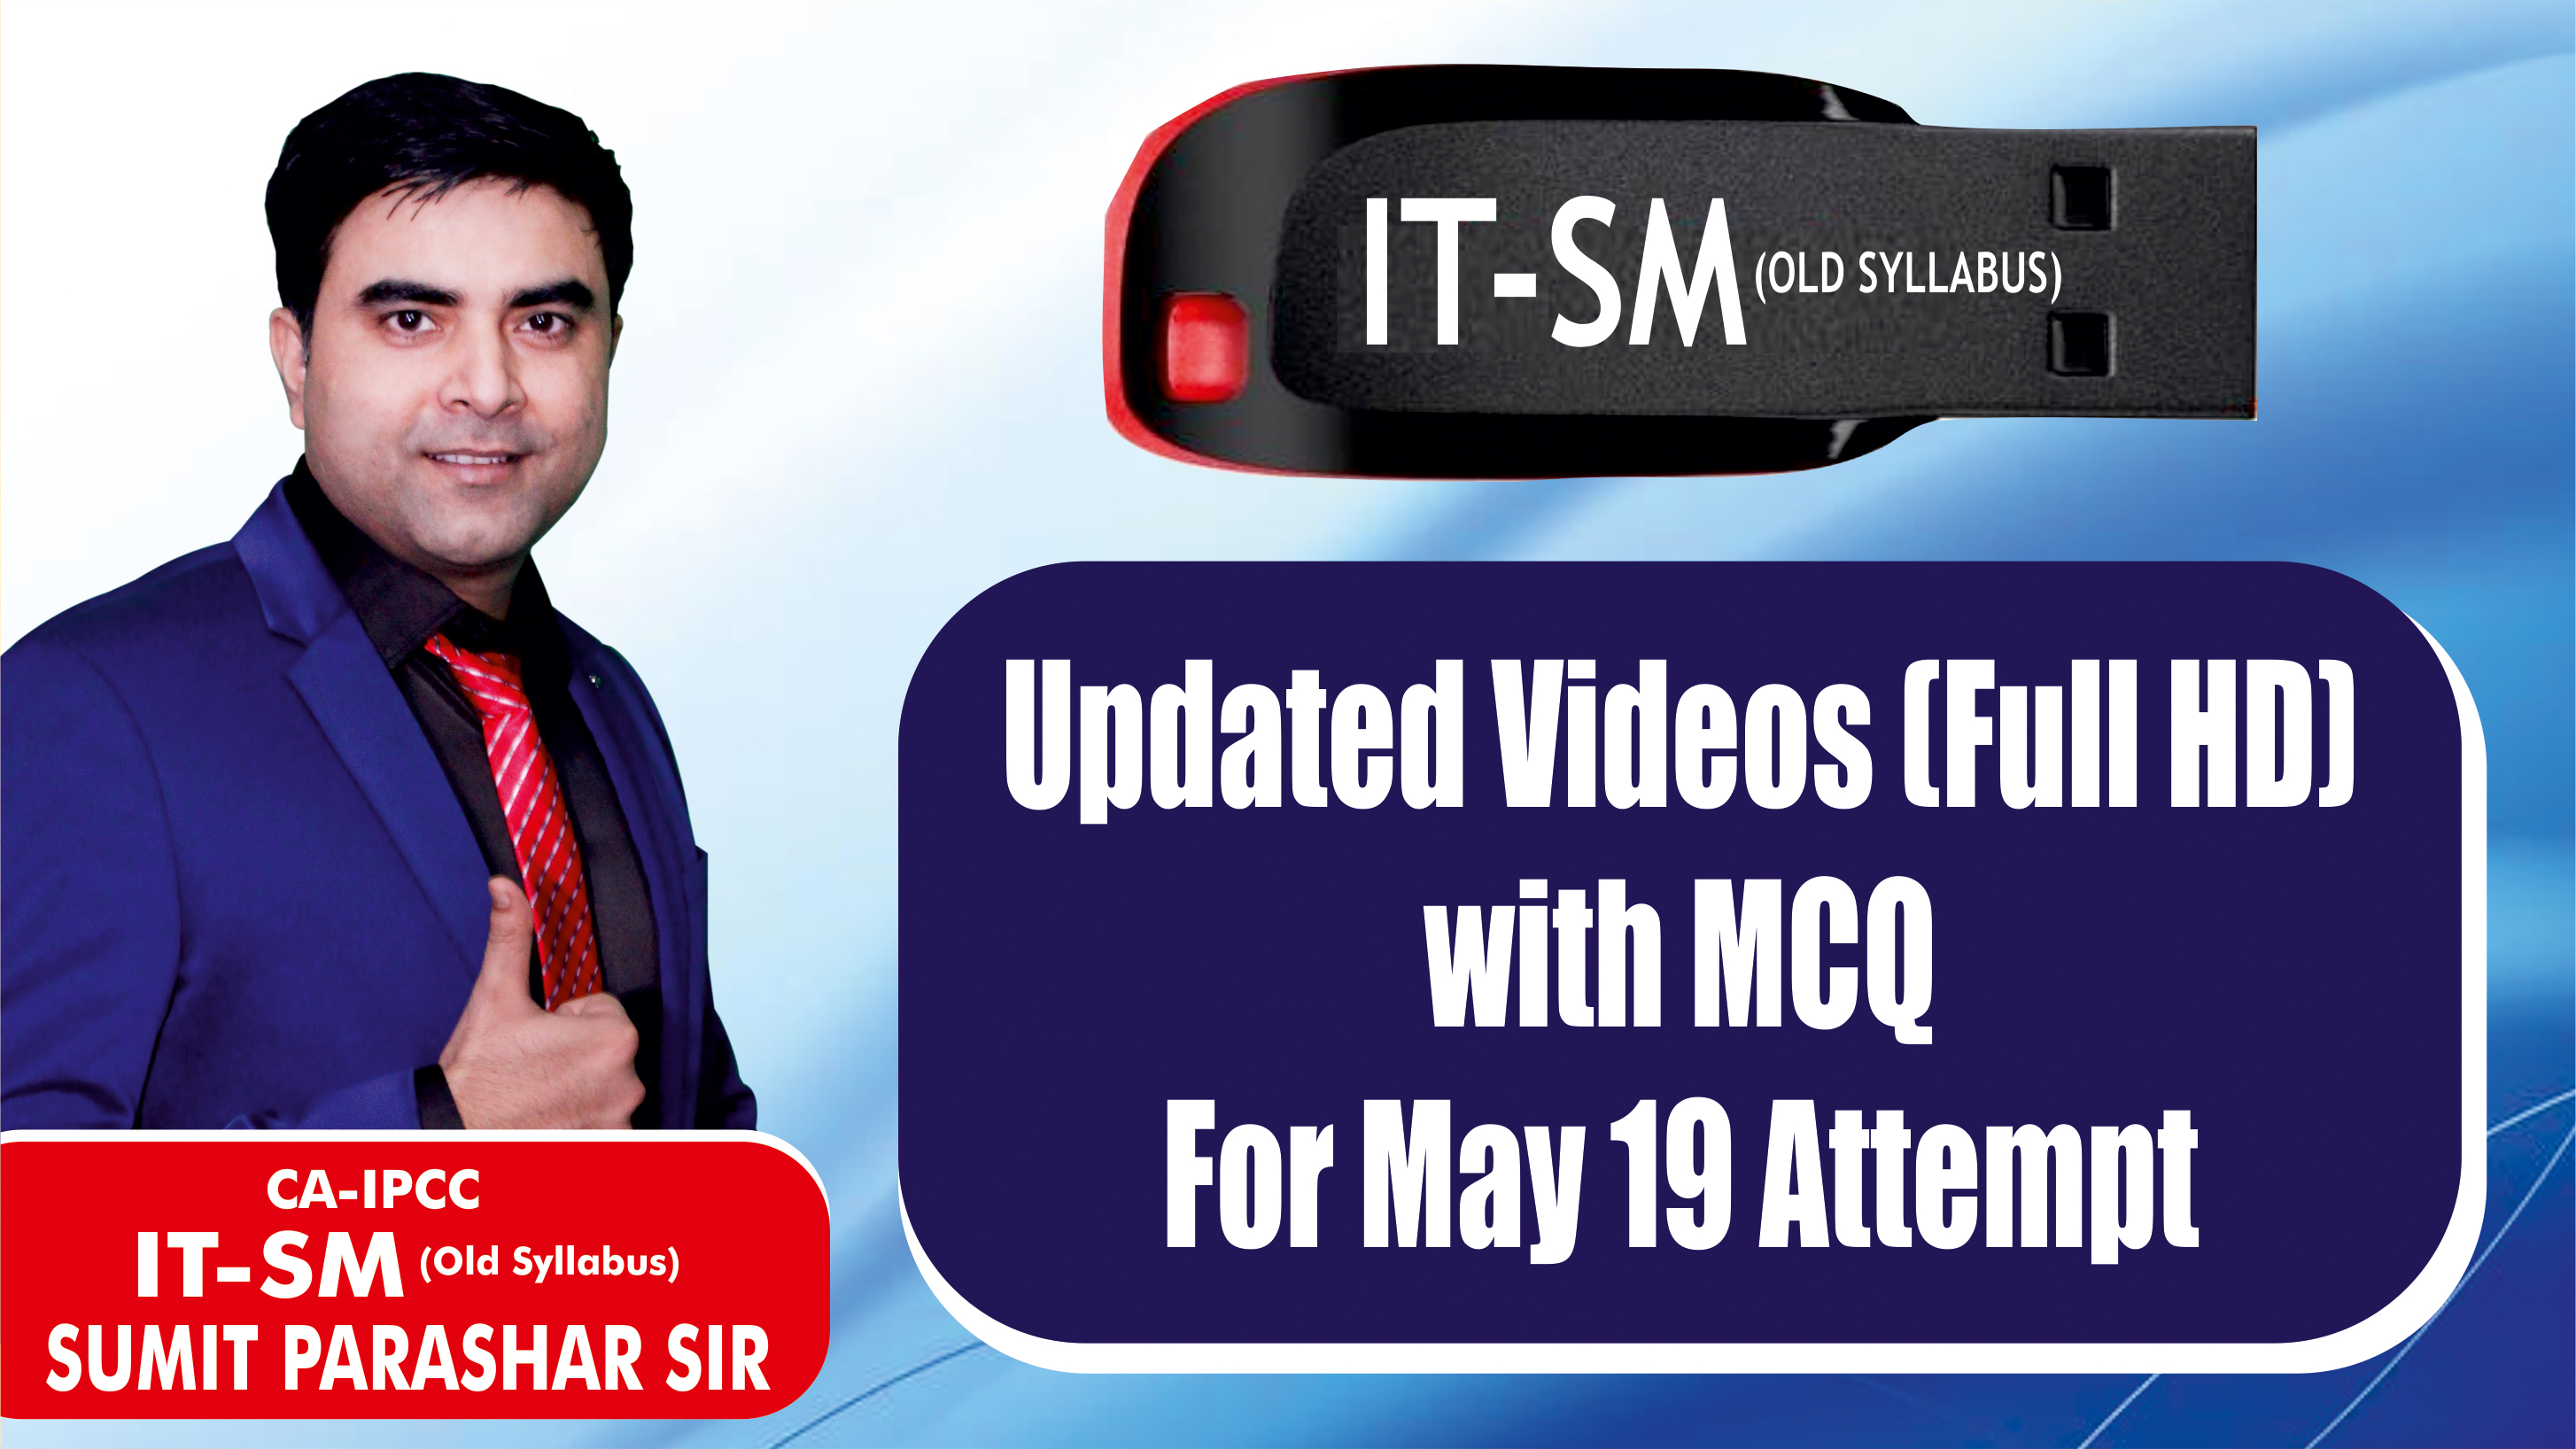 CA Inter IT SM Pendrive Classes (Old course) by Sumit Parashar Sir | Updated for May 19 attempt